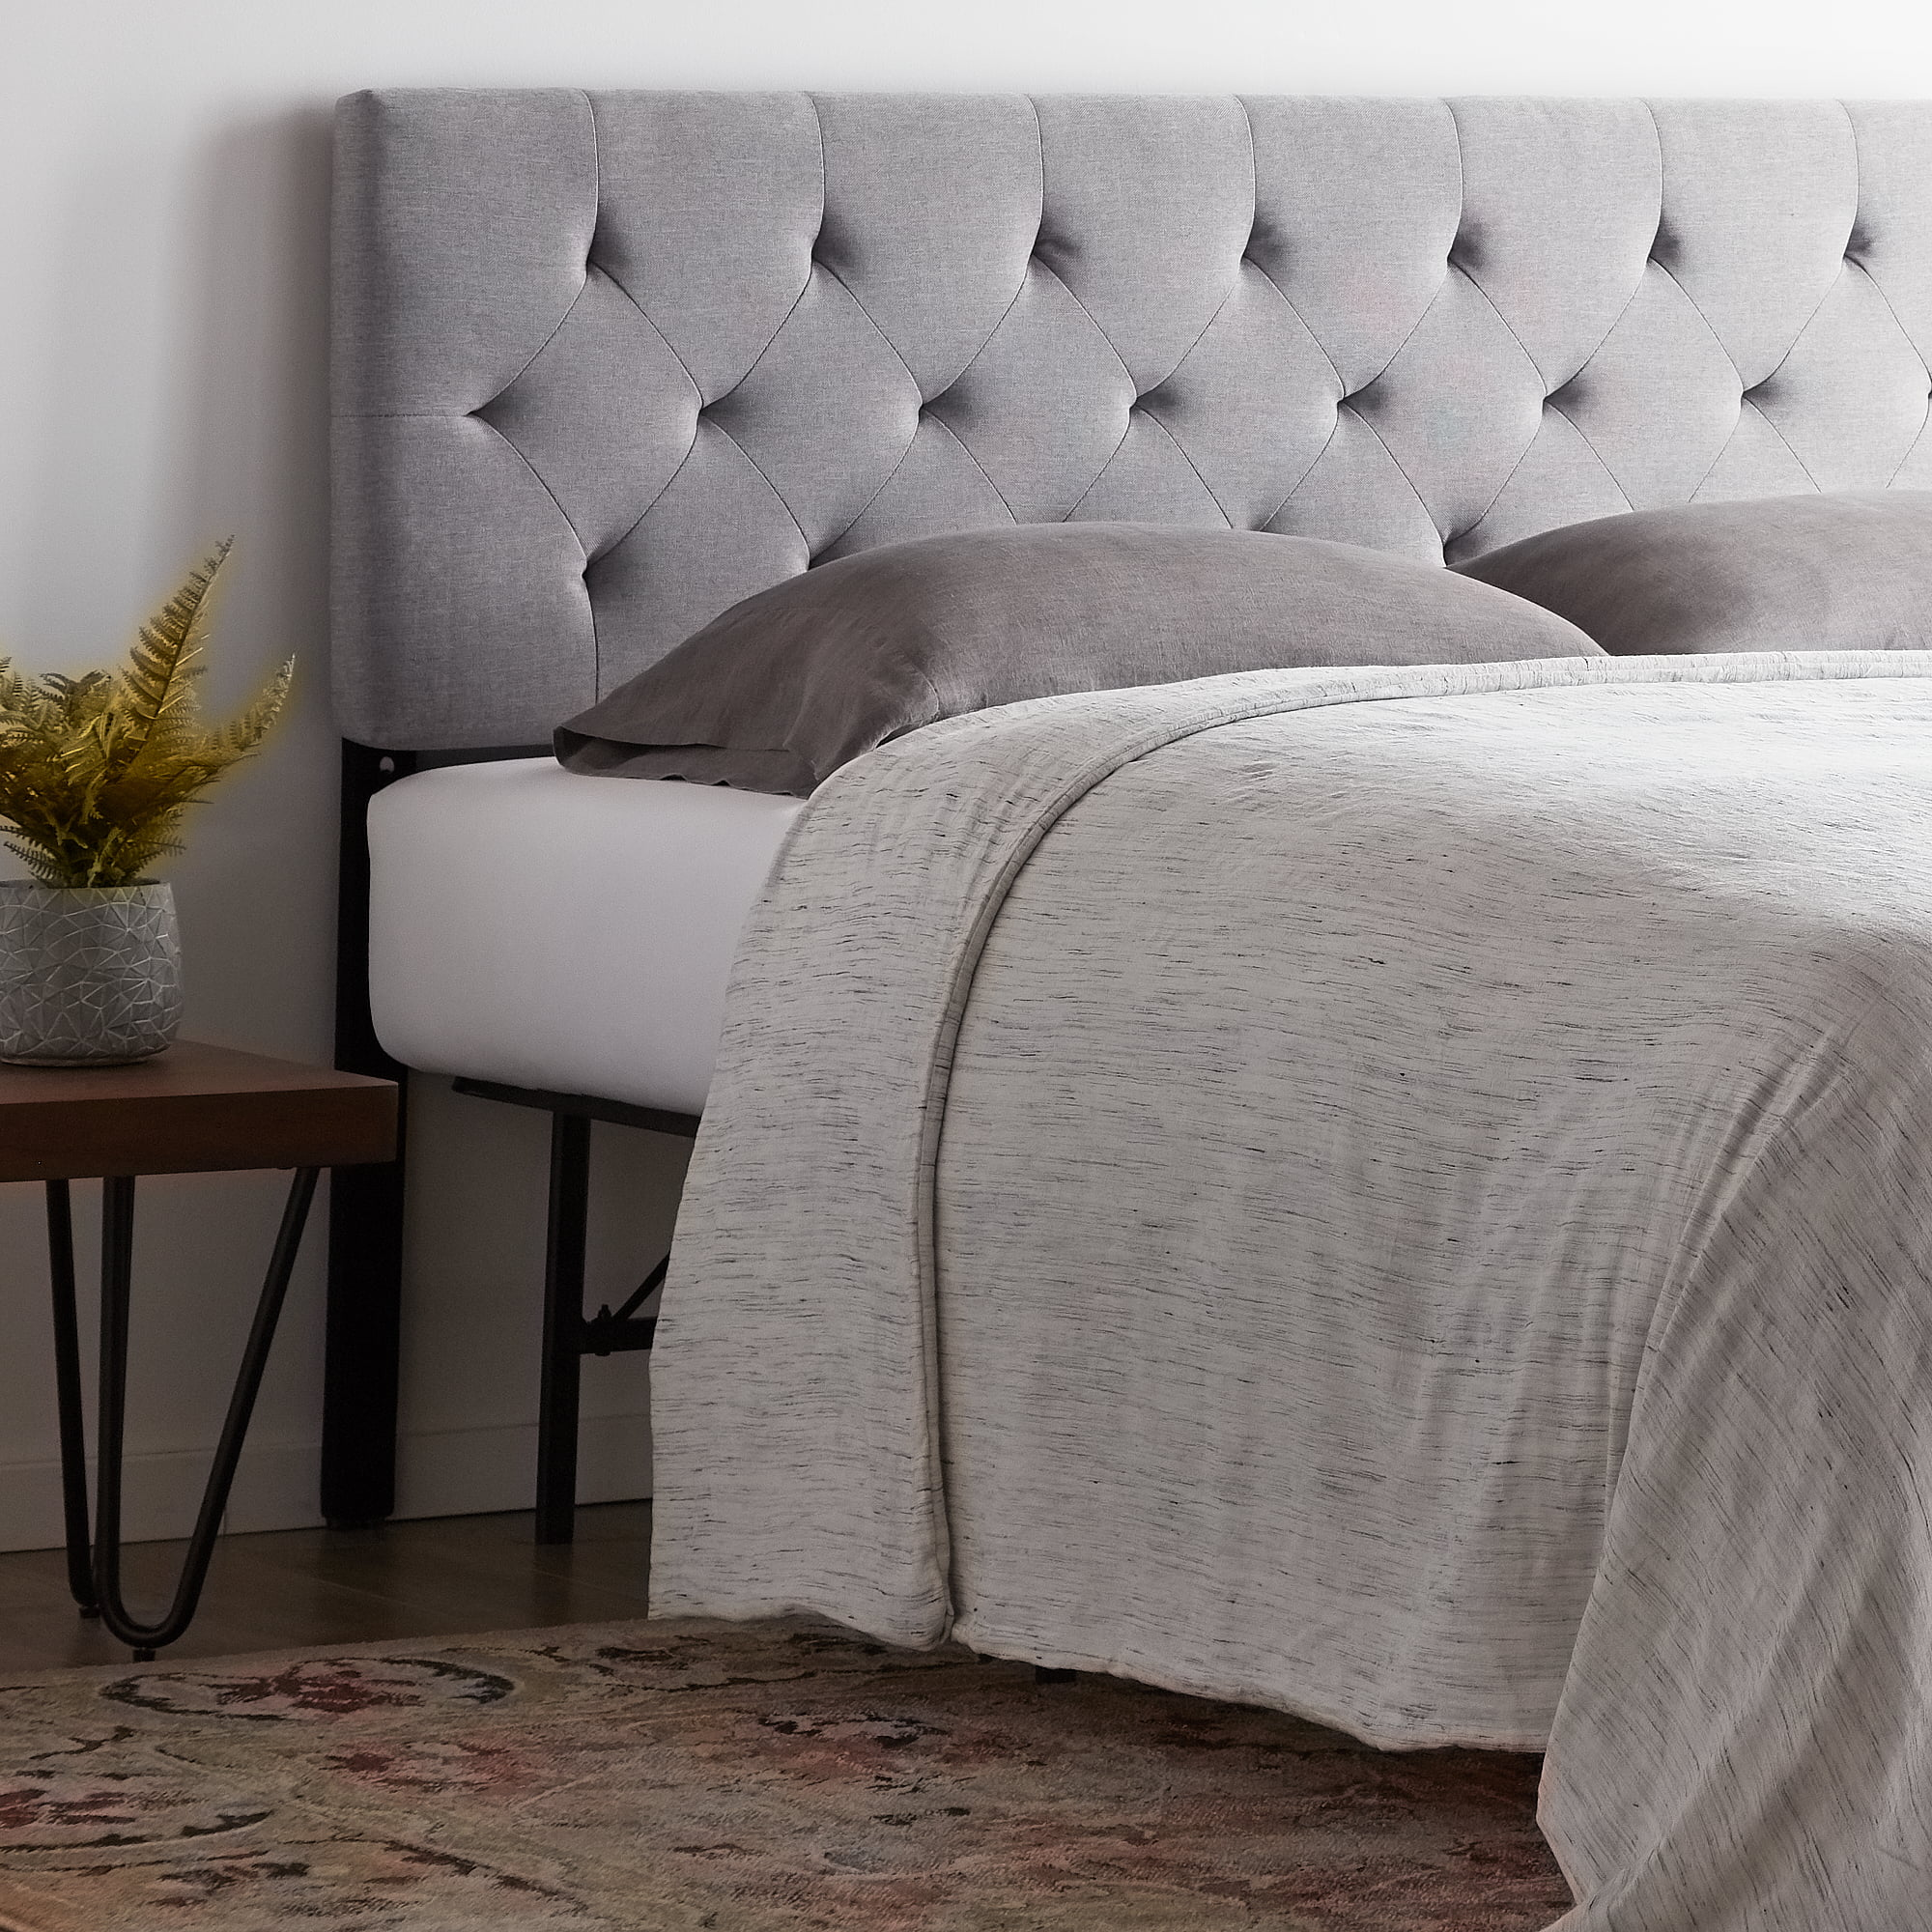 Rest Haven Upholstered Diamond Tufted Mid Rise Headboard King Cal King Gray Walmart Com Walmart Com